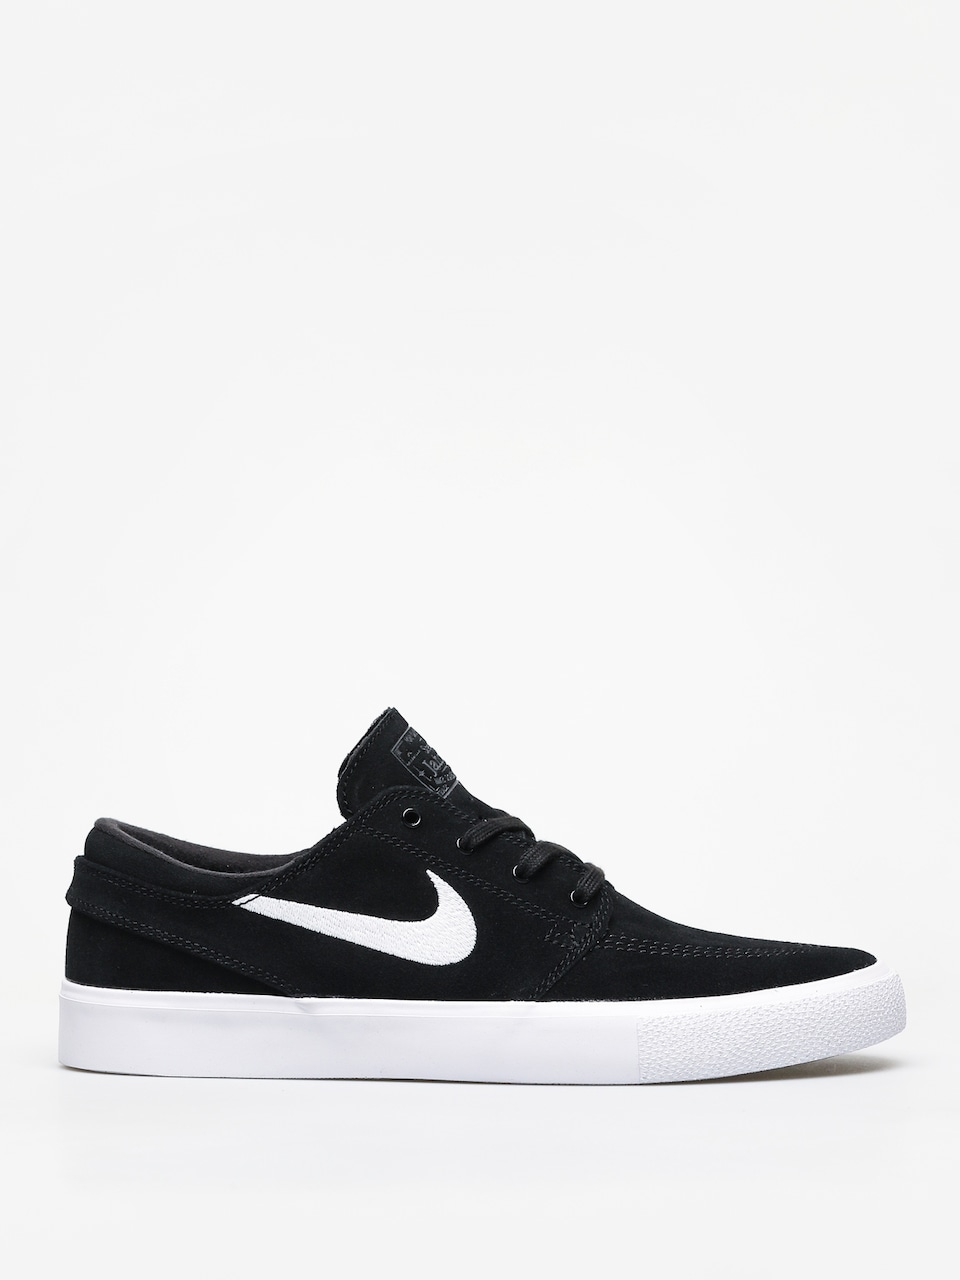 Inaccesible Artefacto orden  Nike SB Zoom Janoski Rm Shoes (black/white thunder grey gum light brown)